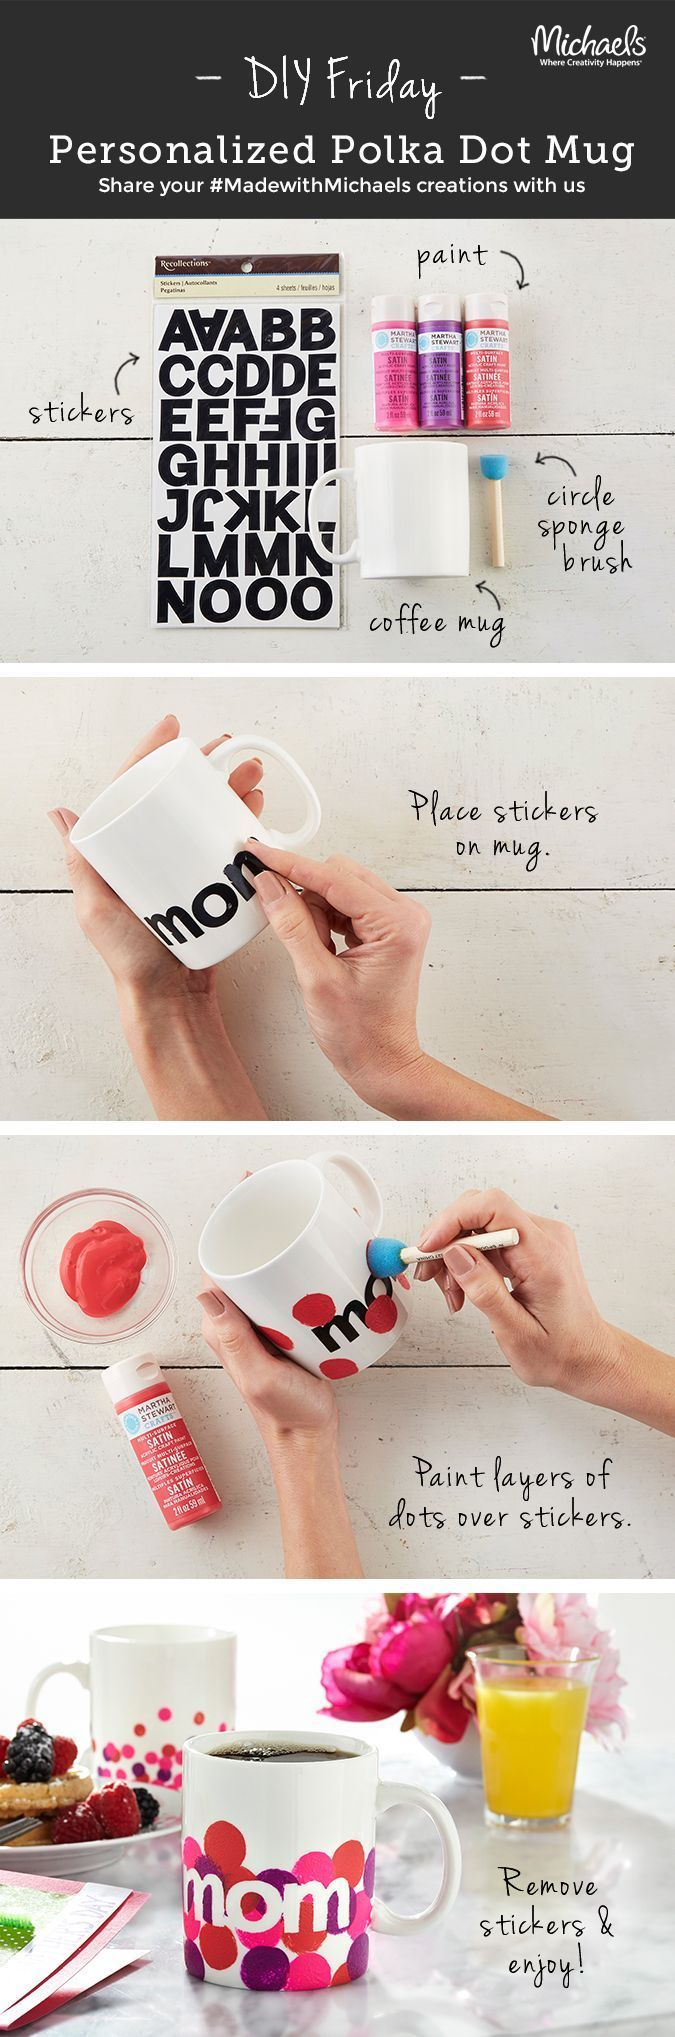 10 Inexpensive DIY Christmas Gifts And Decorations 6 | Alphabet ...